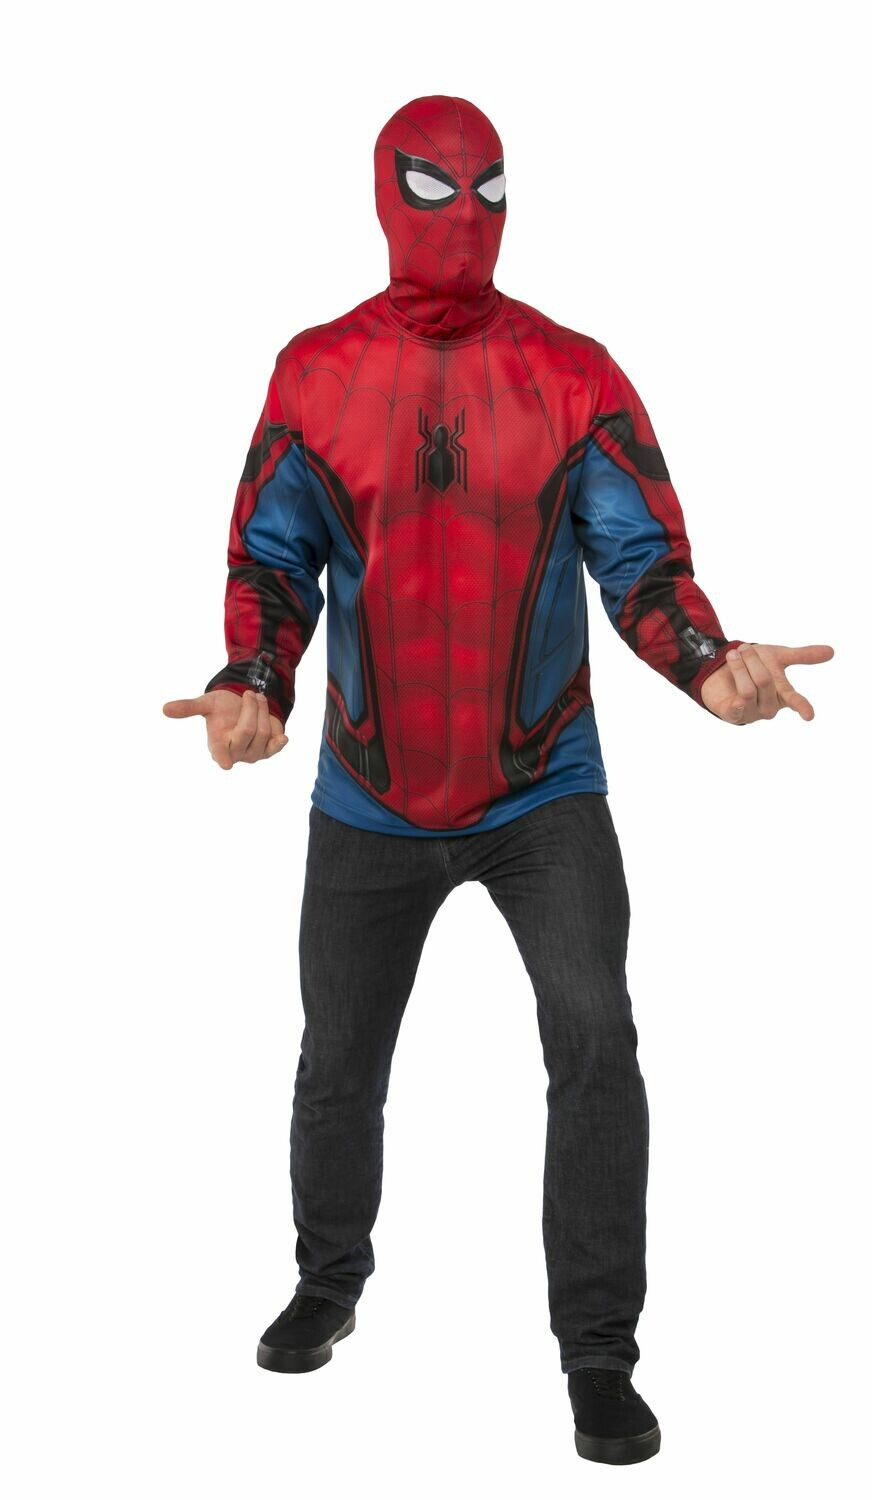 Spider-Man: Far From Home Spider-Man Red/Blue Suit Costume Top - Adult